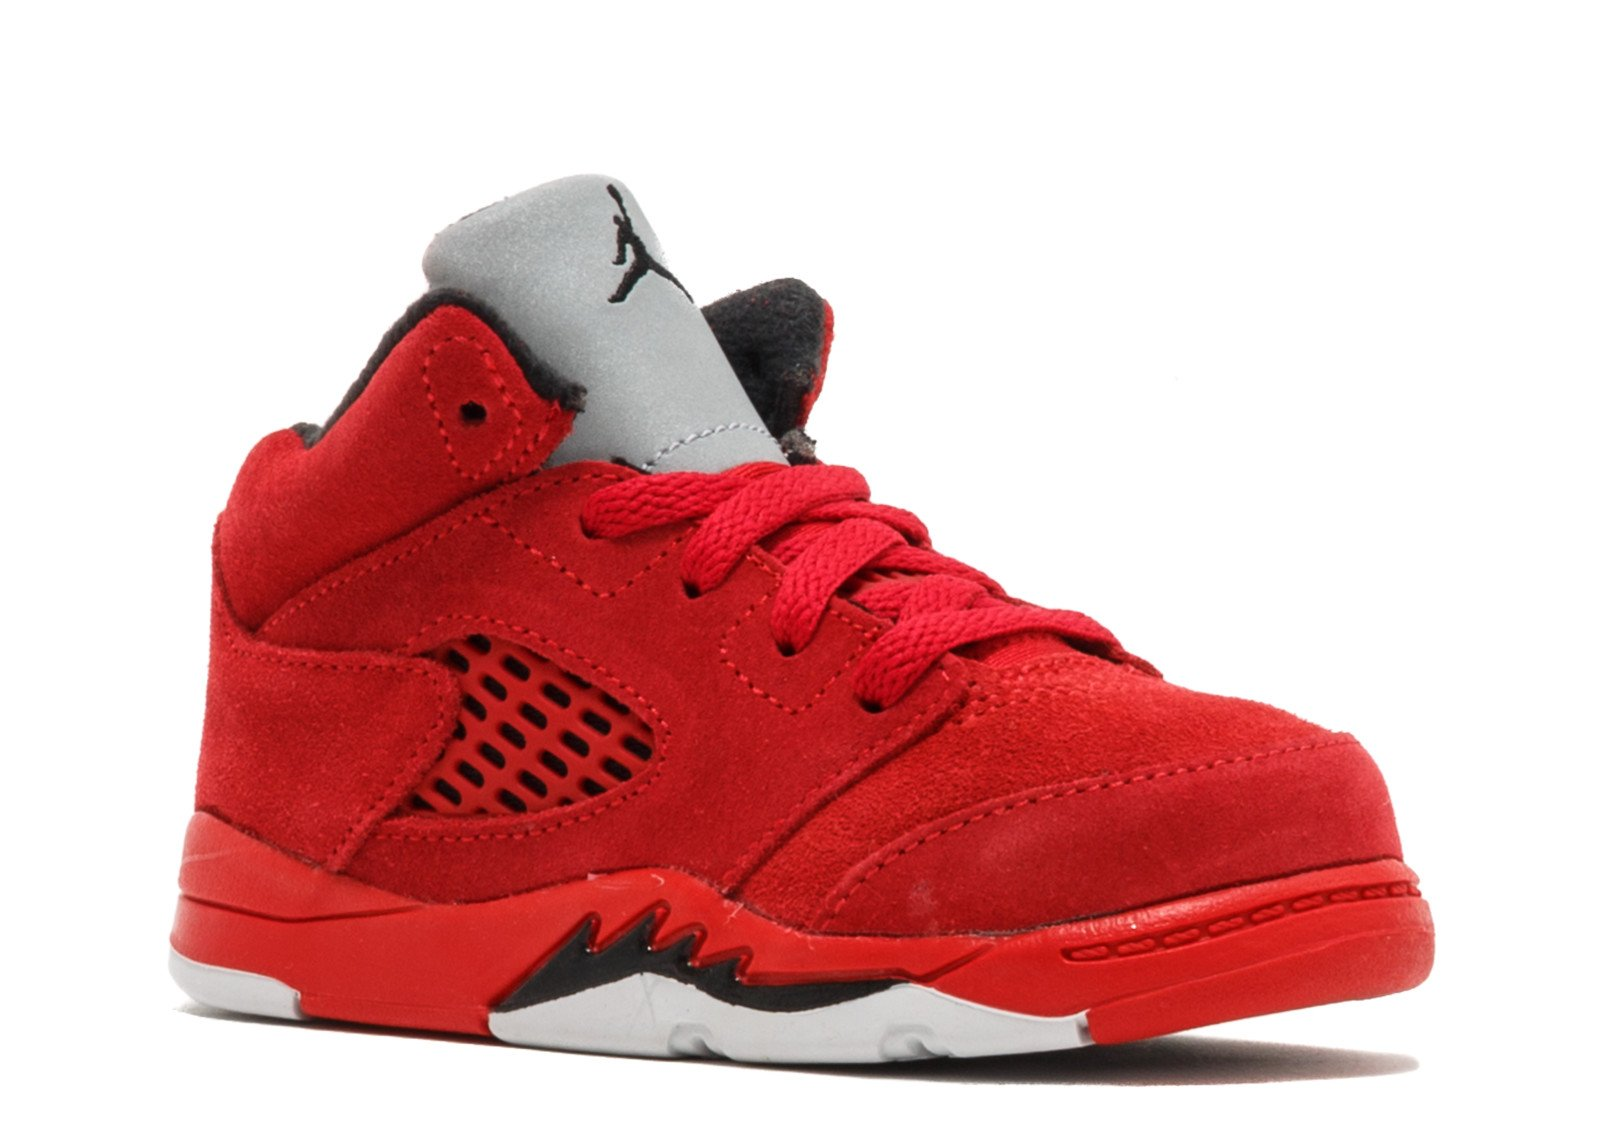 on sale c1bfc 336d1 Nike Kids Jordan 5 Retro BT University Red/Black 440890-602 (Size: 10C)